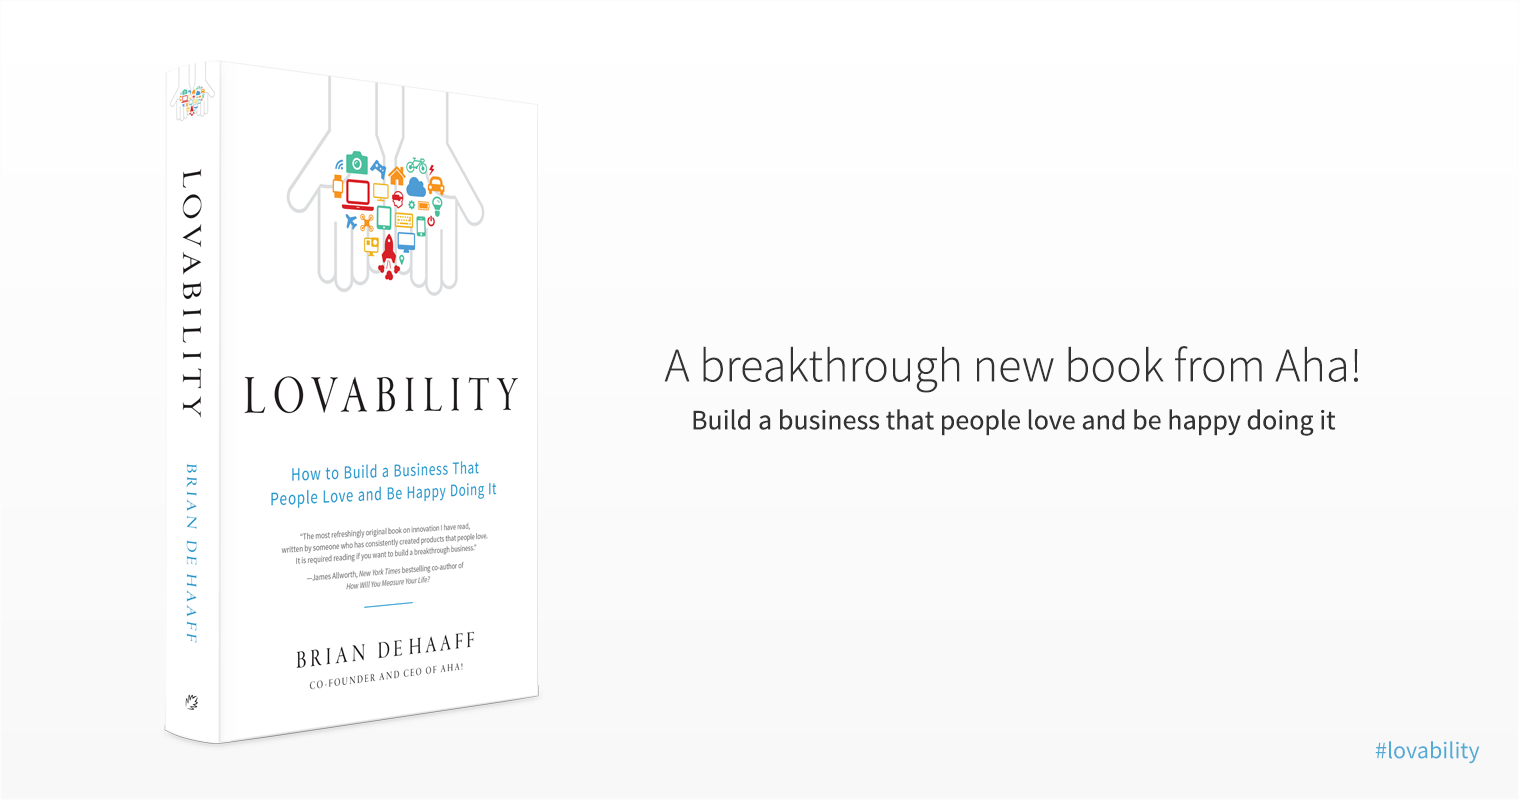 Lovability by Brian de Haaff product management book